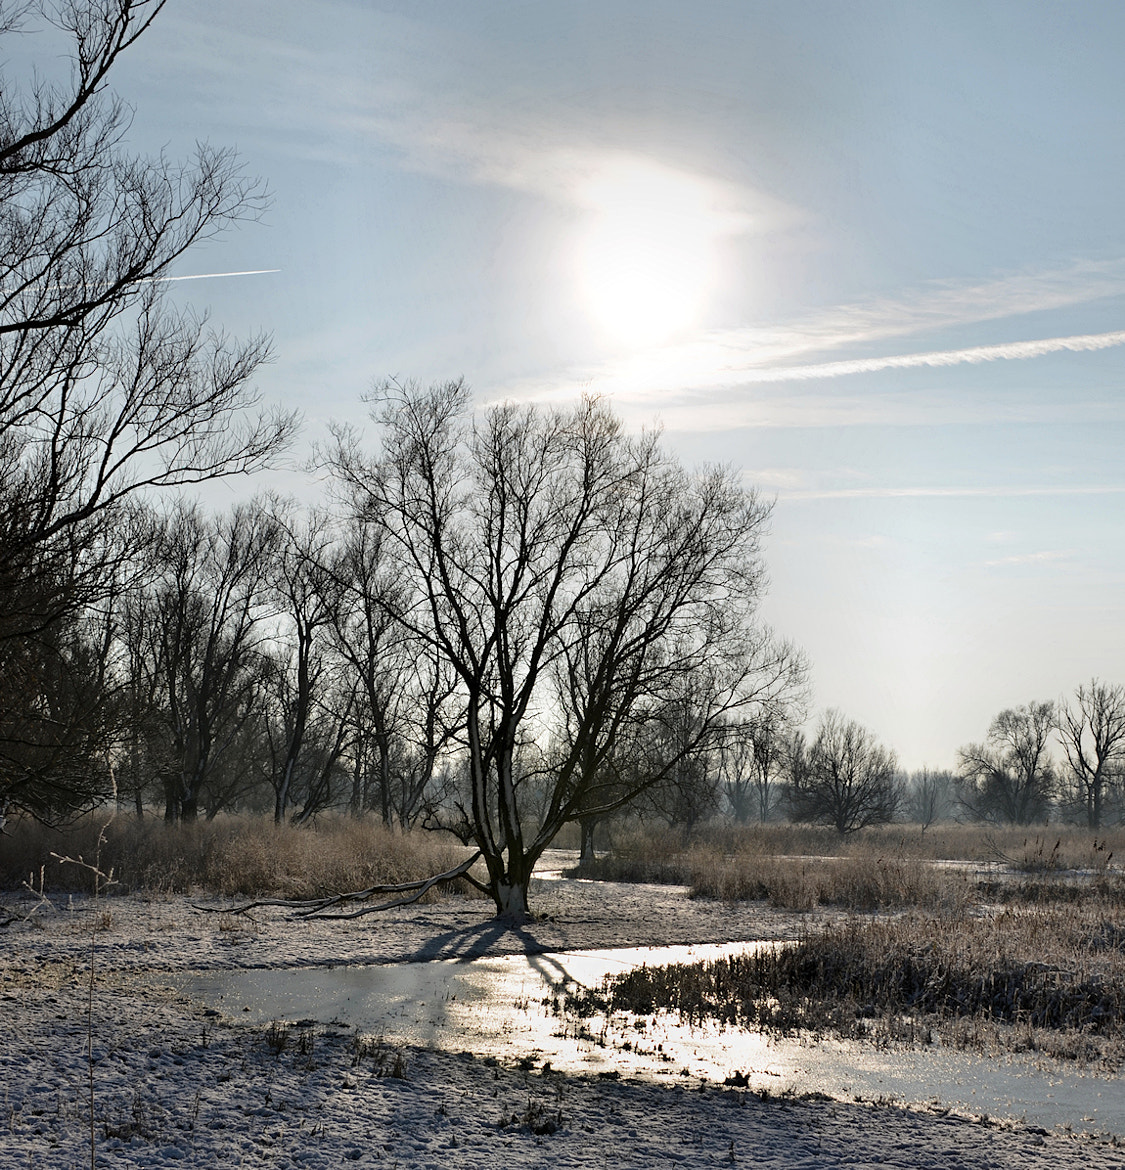 Photograph Oost III by Frank de Ridder on 500px